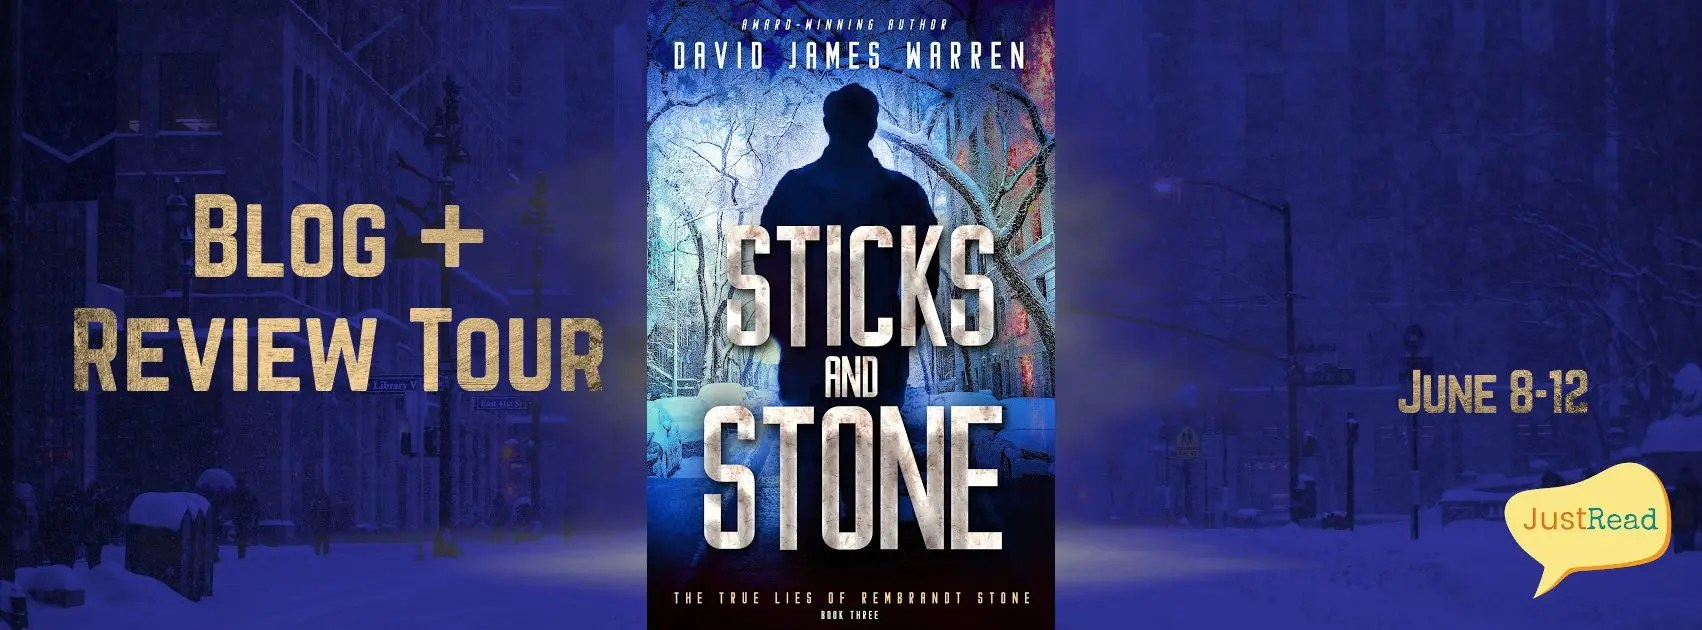 Welcome to the Sticks and Stone Blog + Review Tour & Giveaway!